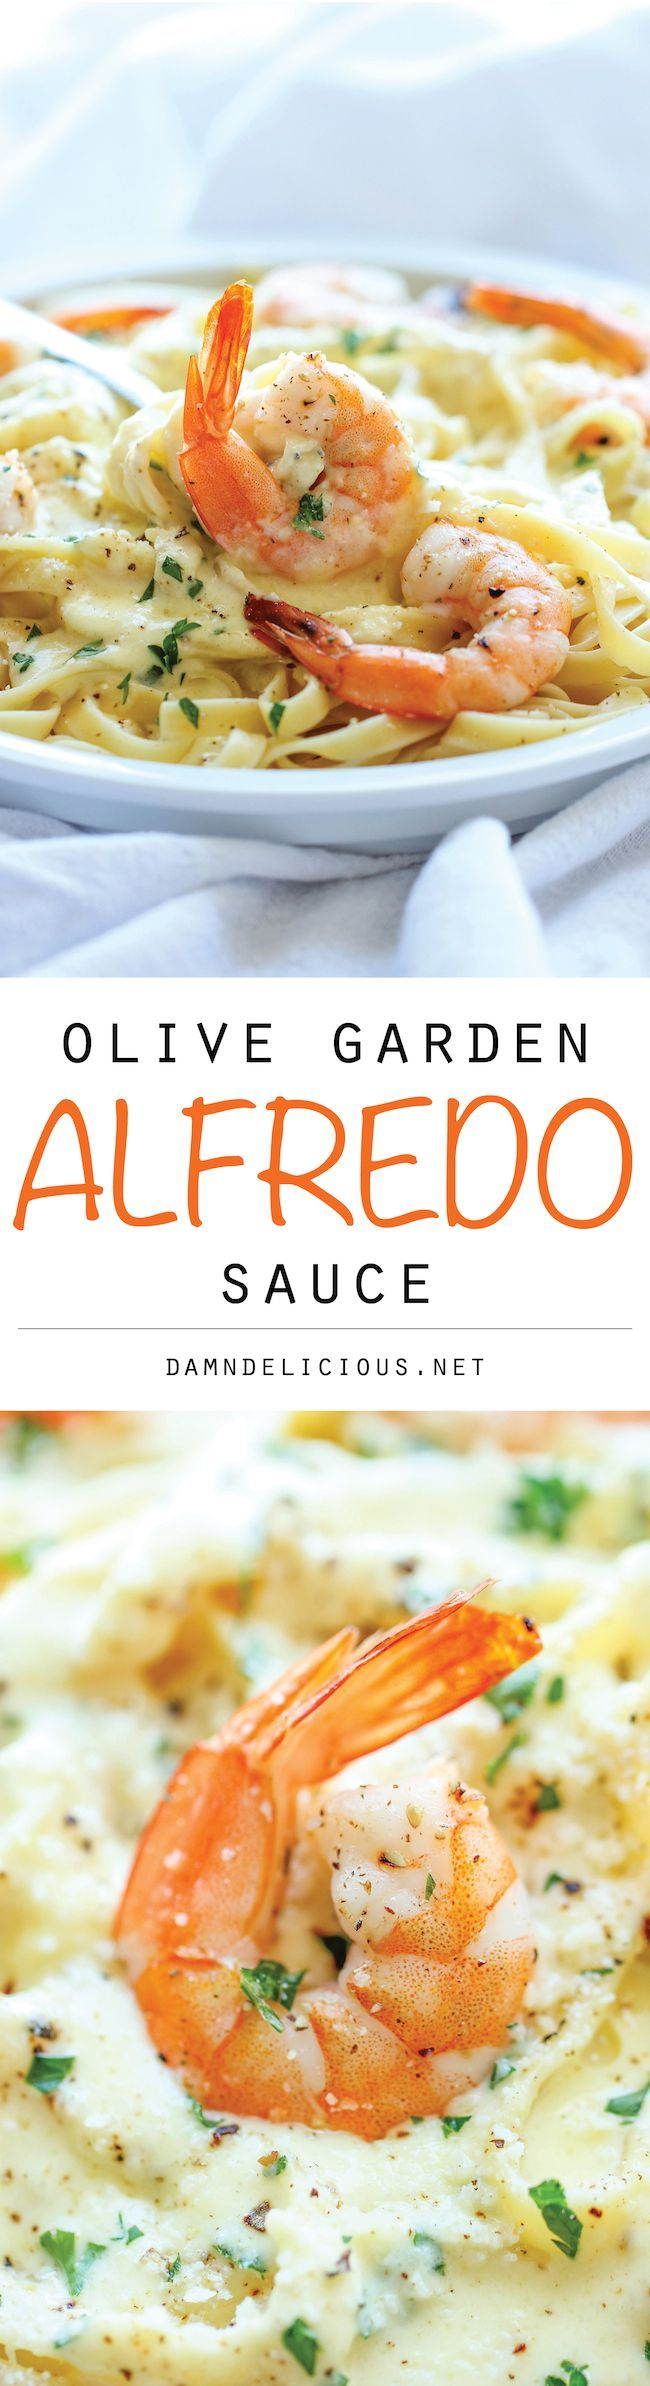 Olive Garden Alfredo Sauce – An easy, no-fuss dish you can make right at home…